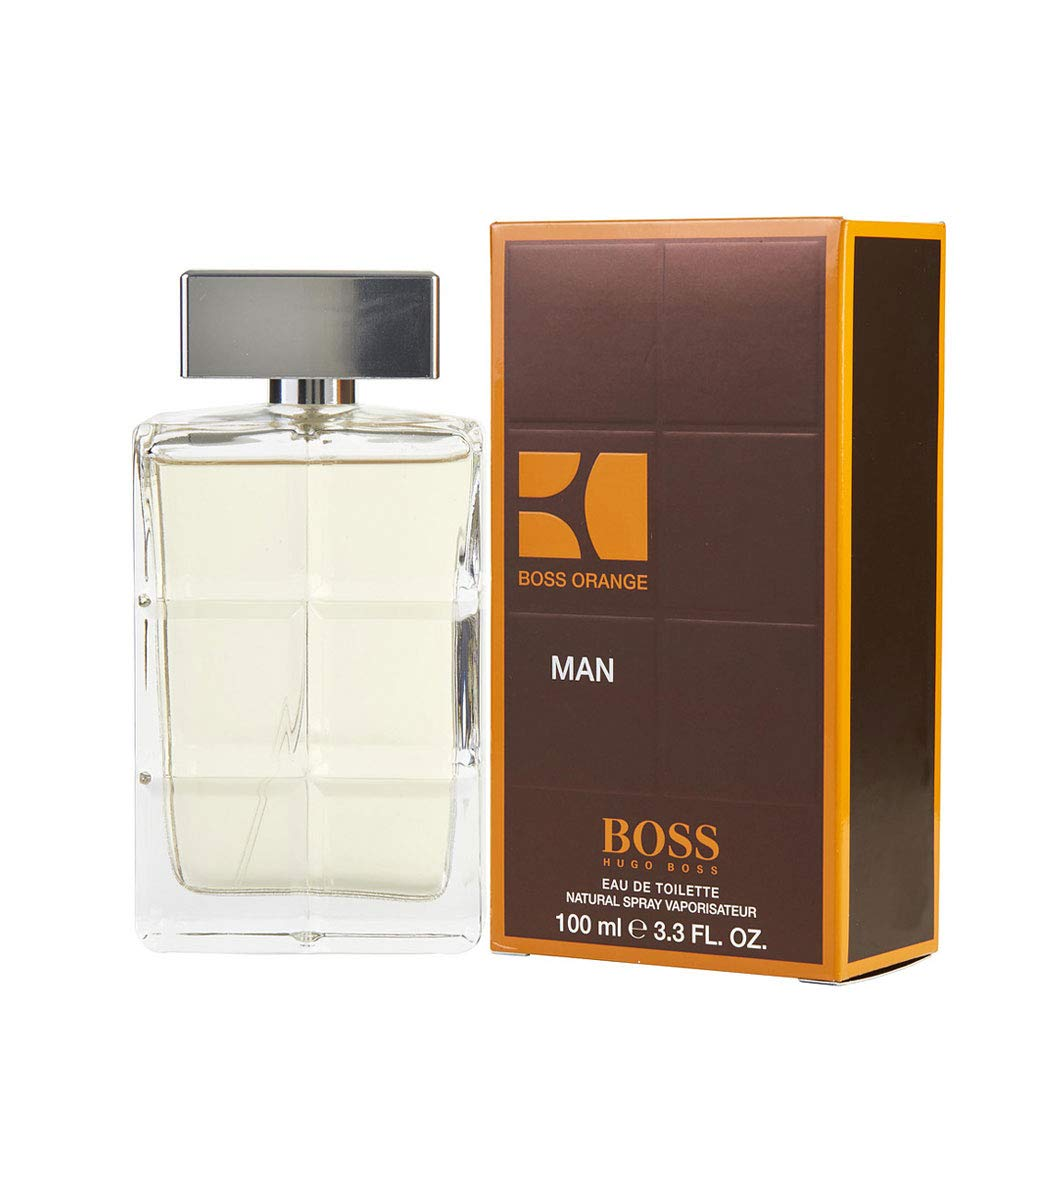 [amazon.de] Hugo Boss Orange Men 100ml um 28,90€